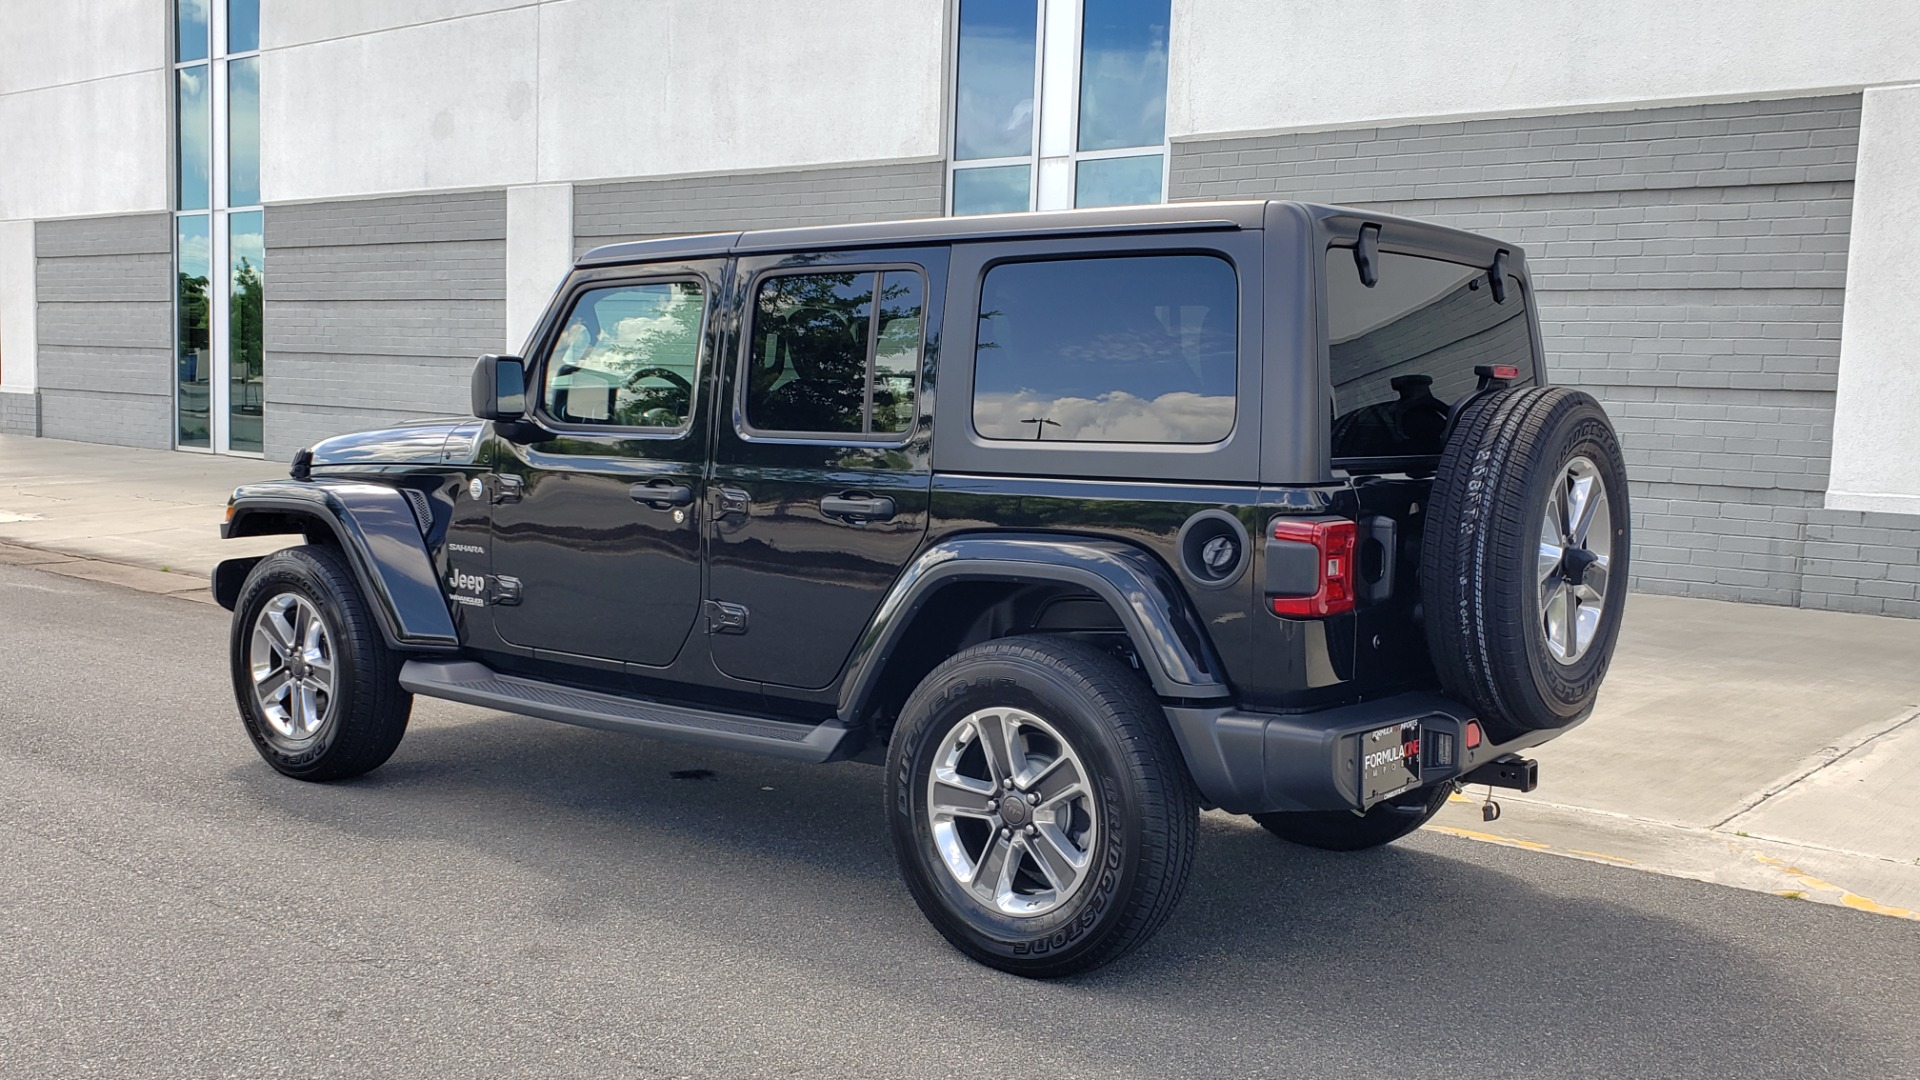 Used 2018 Jeep WRANGLER UNLIMITED SAHARA / 3.6L V6 / 6-SPD MAN / ALPINE / NAV / HTD STS / REARVIEW for sale $43,999 at Formula Imports in Charlotte NC 28227 6